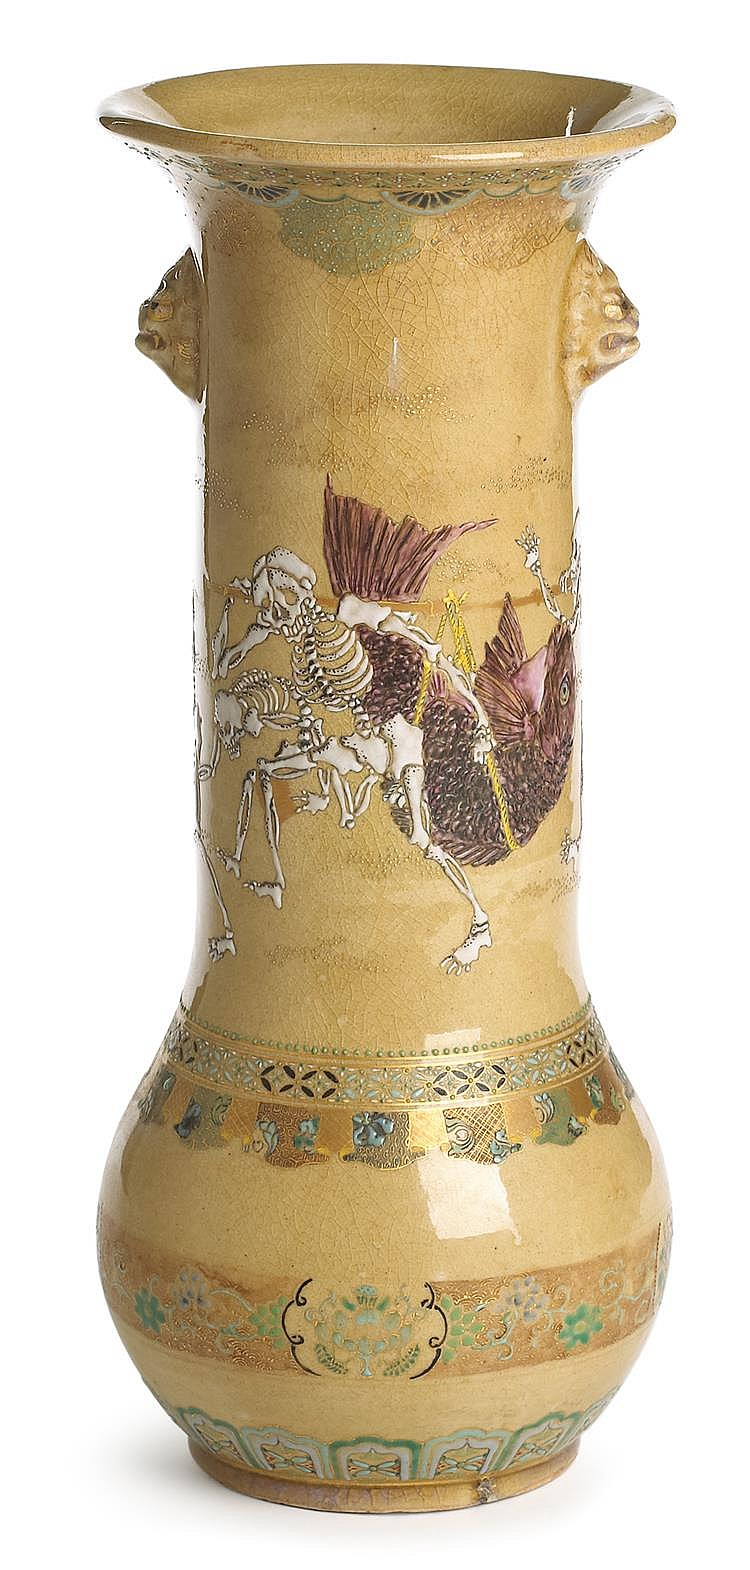 Tall Japanese satsuma vase painted with skeletons and carp, meiji period, Of baluster form with flaring rim, the body painted in the ro